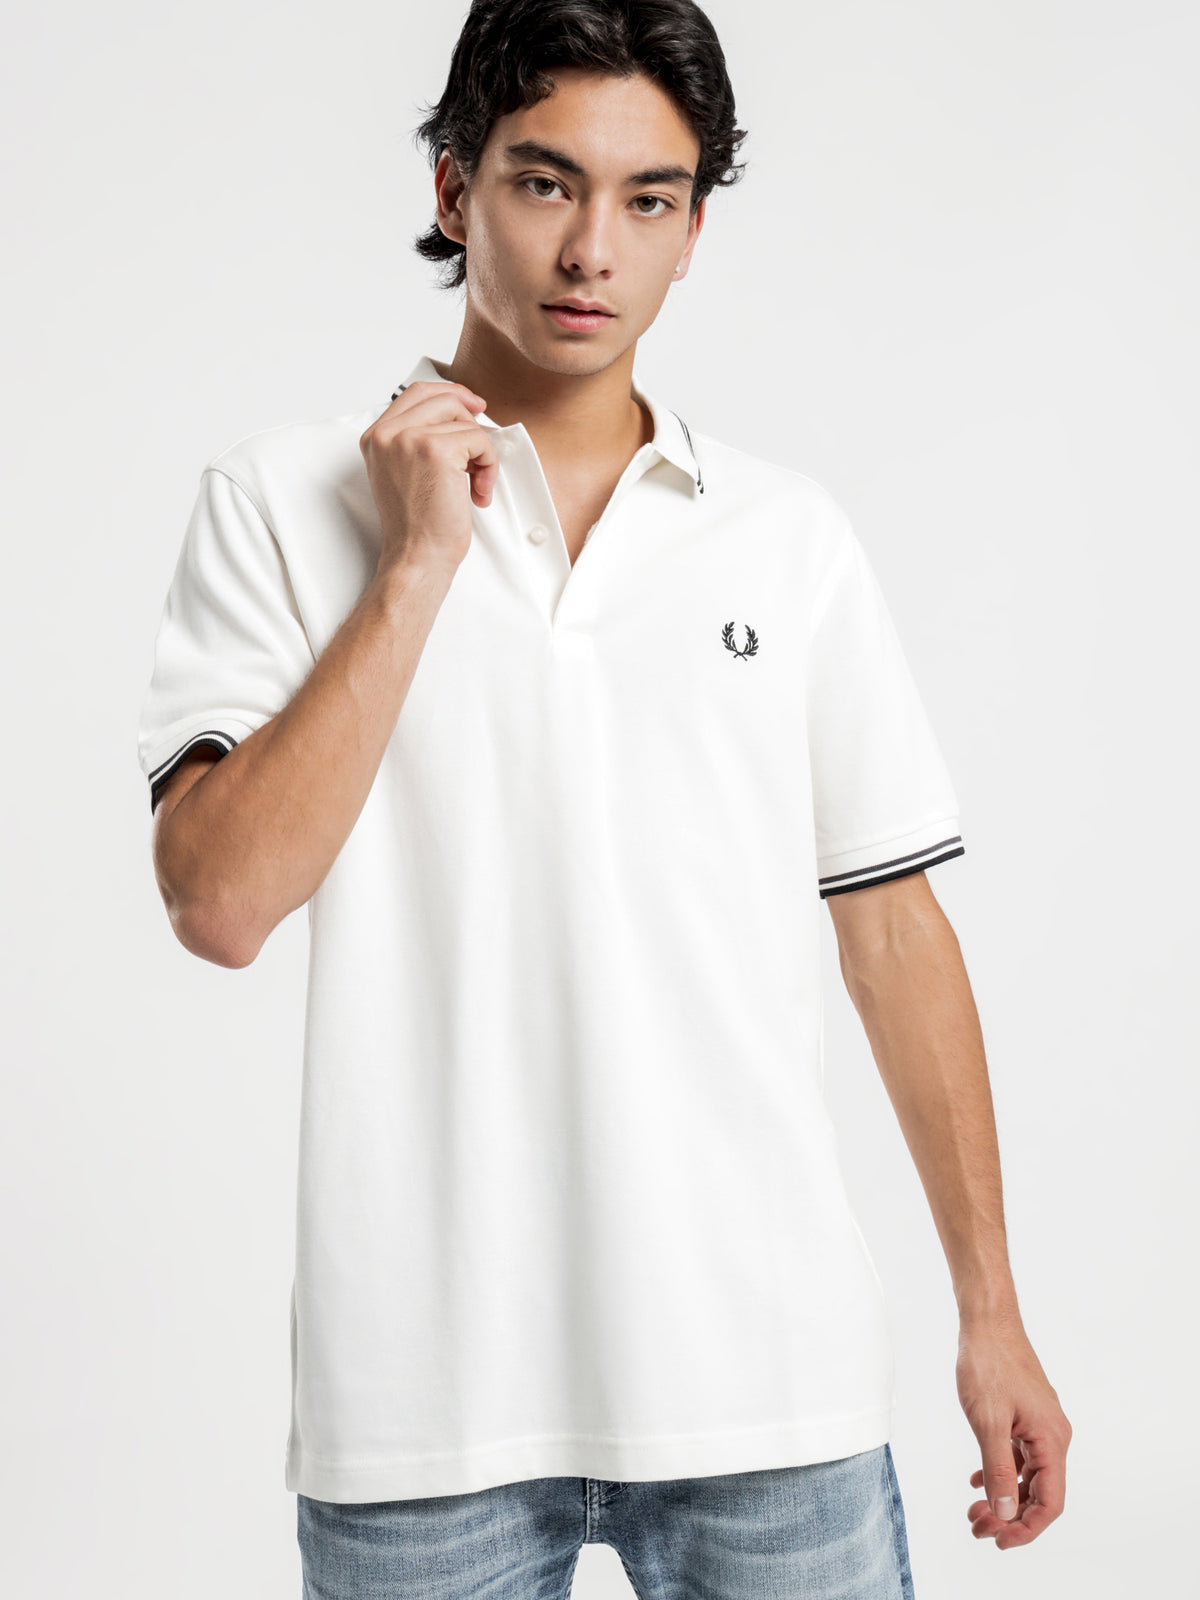 Twin Tripped Fred Perry Shirt in Snow White